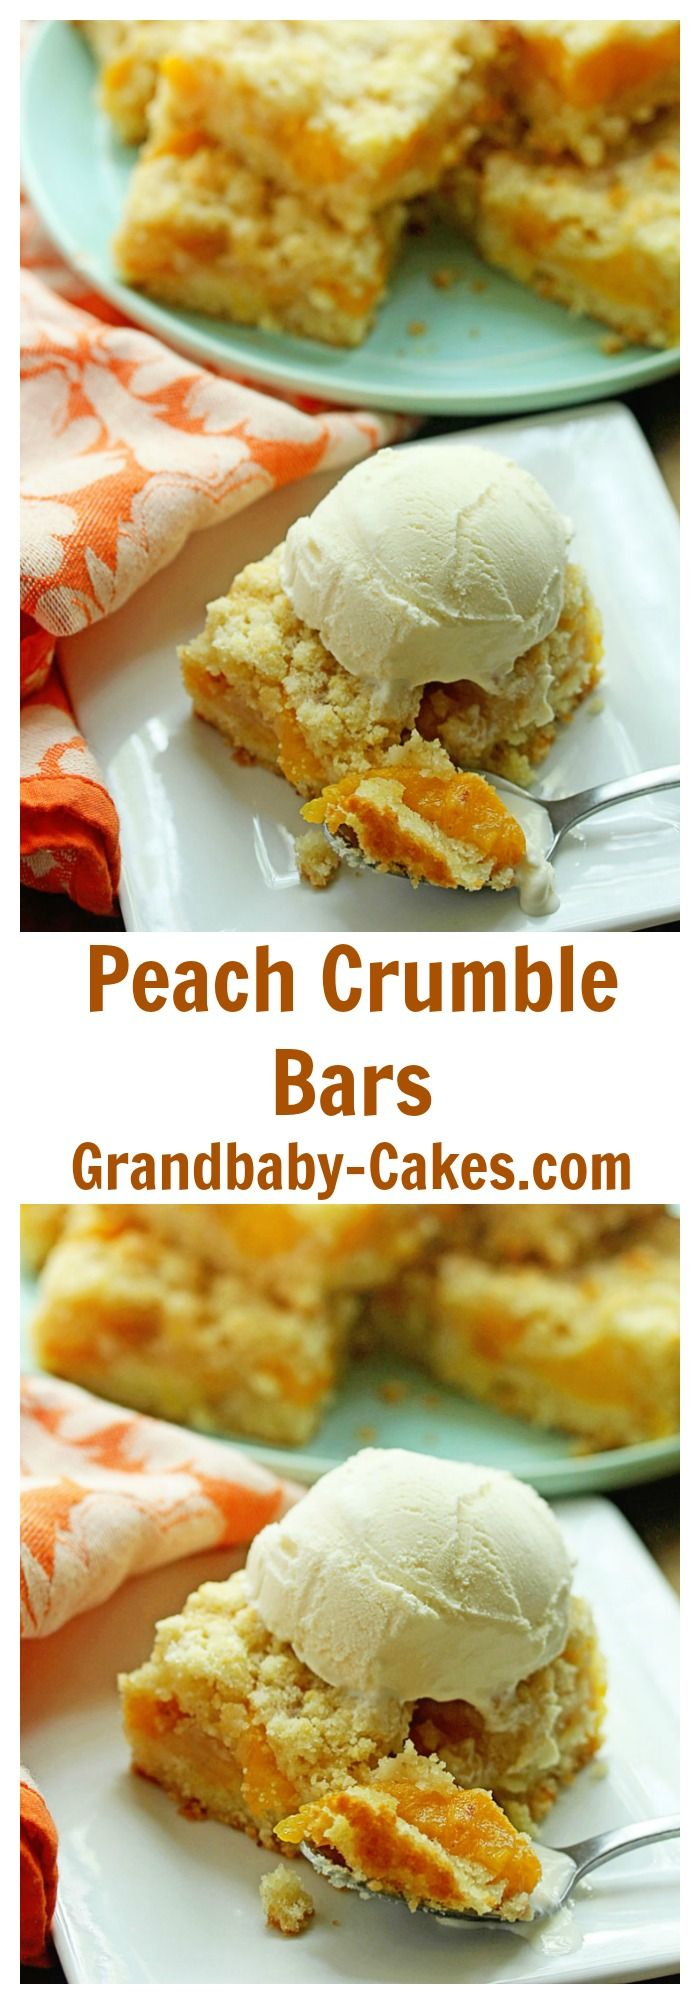 The MOST Delicious and Perfect Peach Crumble Bars EVER!  | Grandbaby-Cakes.com